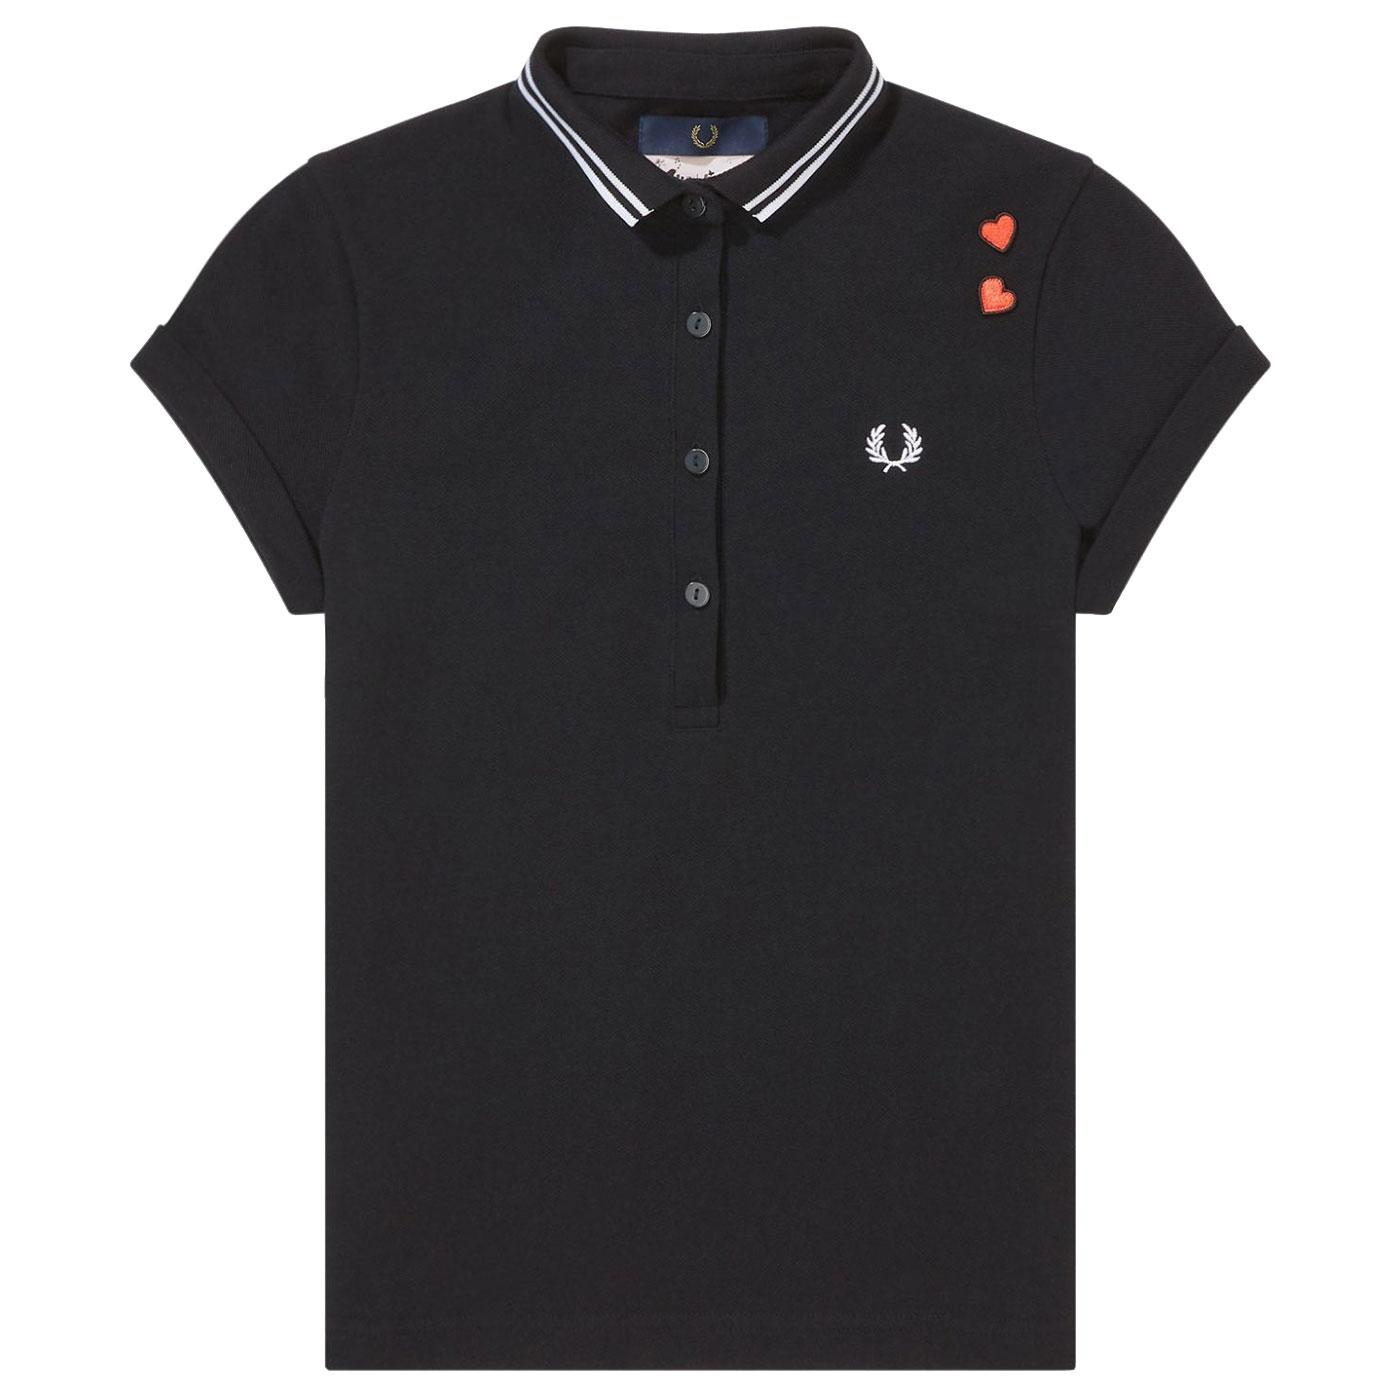 FRED PERRY Amy Winehouse Womens Tipped Polo Shirt